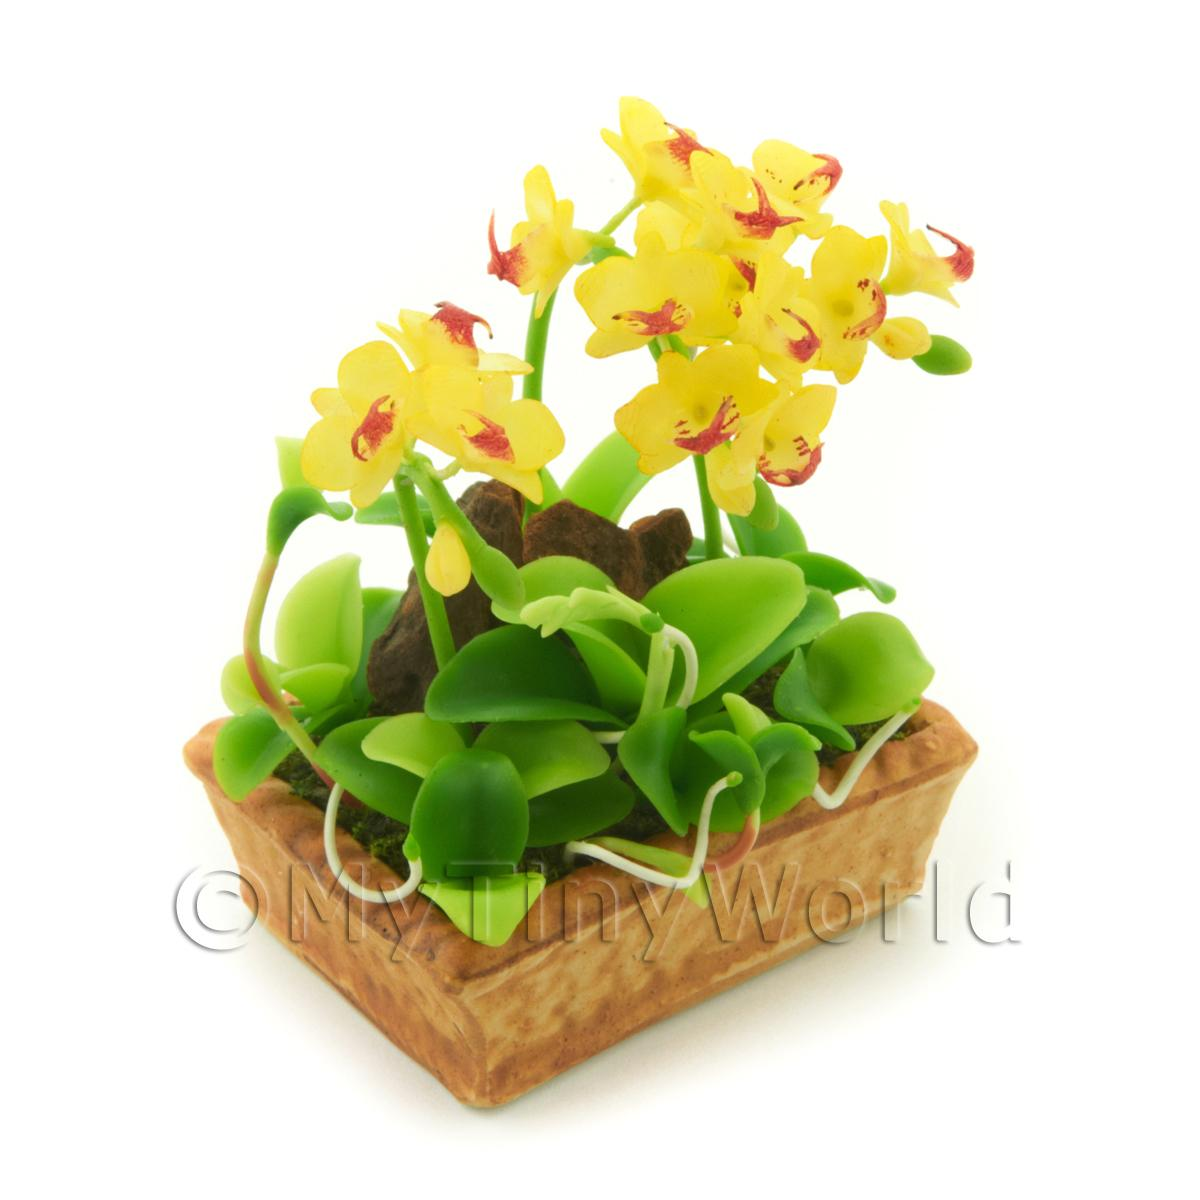 Dolls House Miniature Yellow / Red Dendrobium Orchid Display